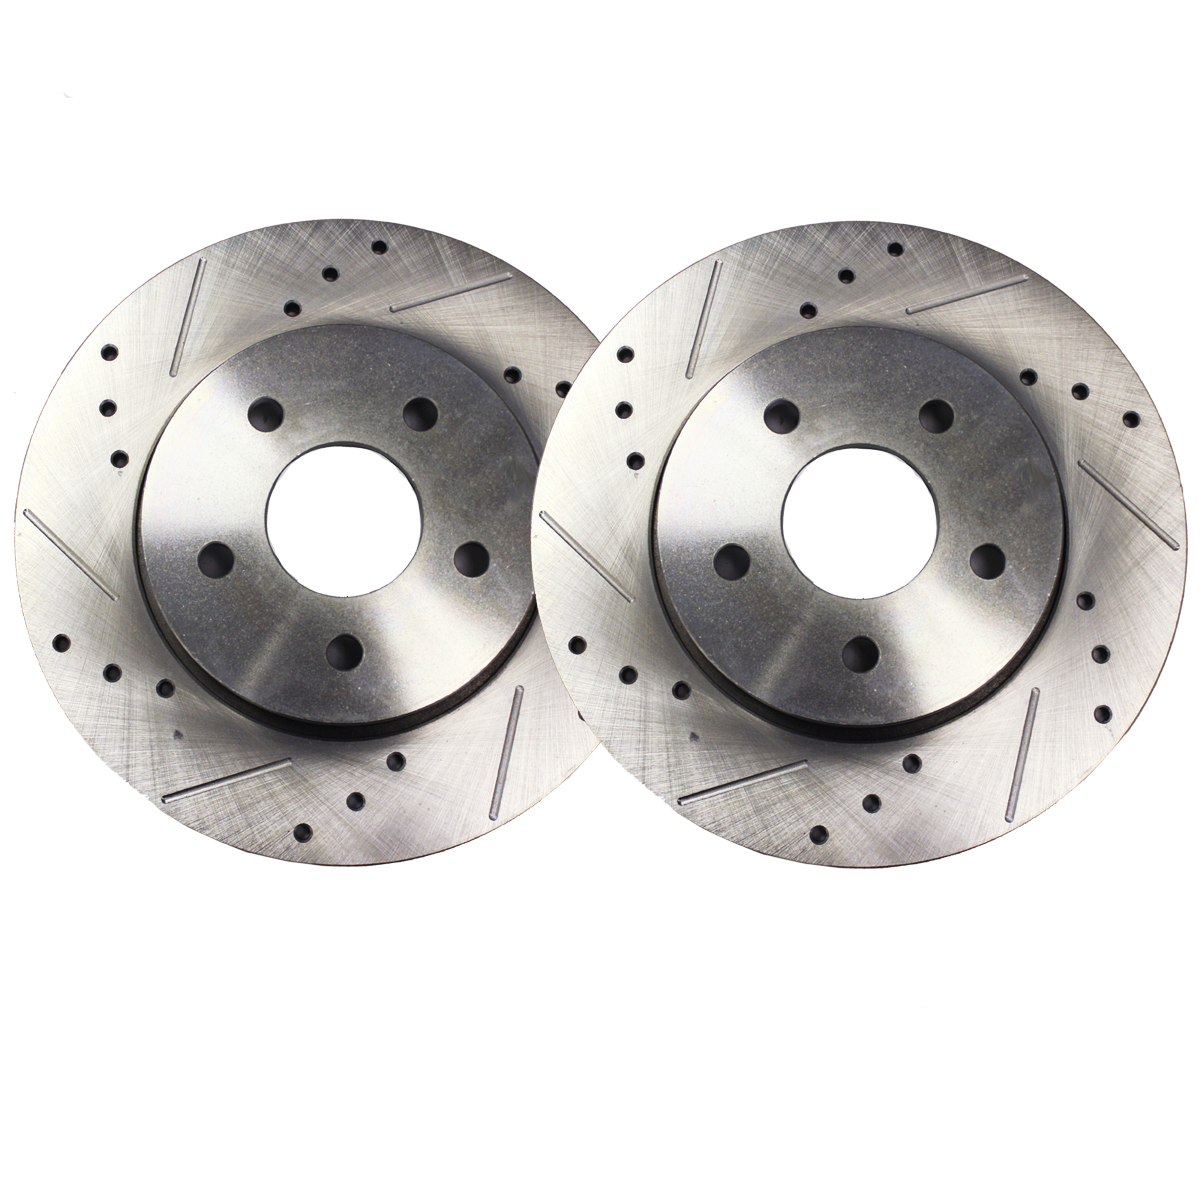 Front Drilled and Slotted Brake Rotors #S-55034- GM Models